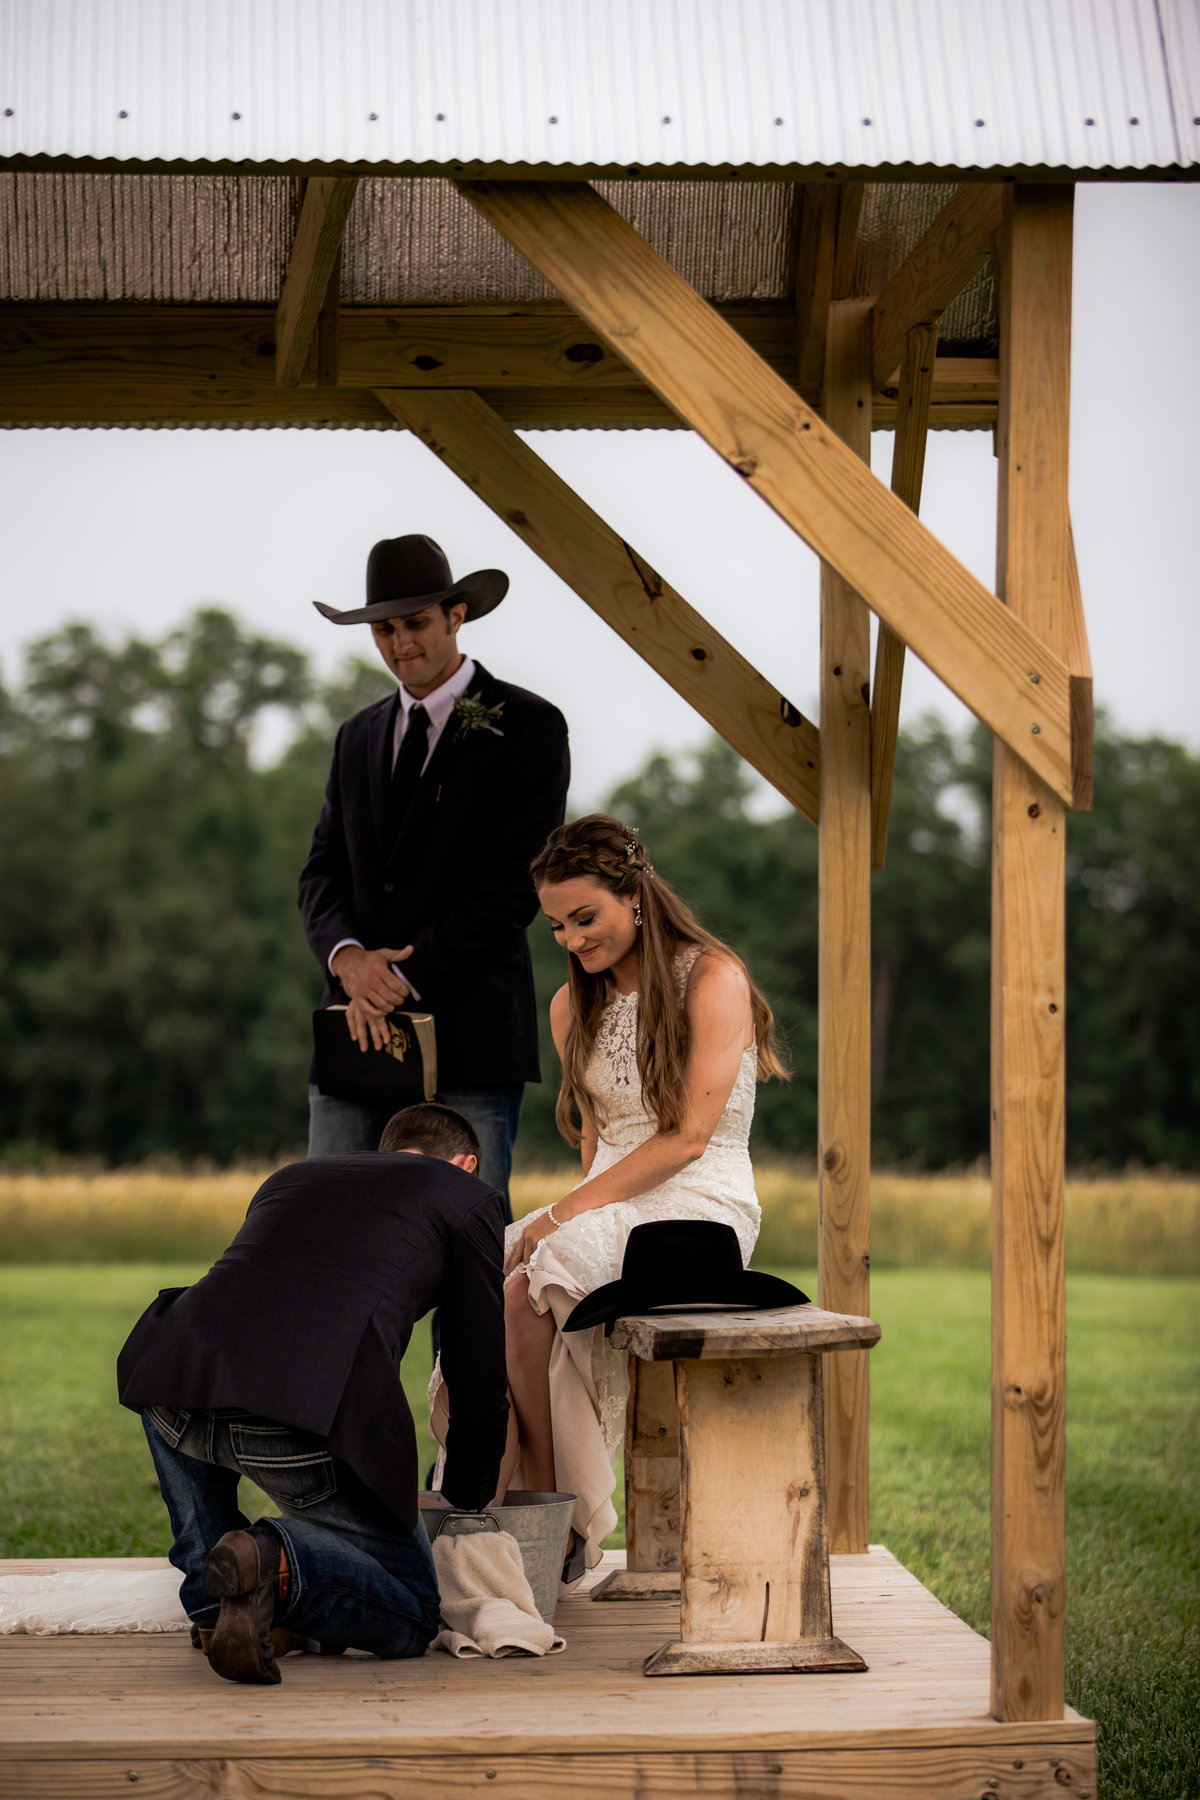 Nsshville Bride - Nashville Brides - The Hayloft Weddings - Tennessee Brides - Kentucky Brides - Southern Brides - Cowboys Wife - Cowboys Bride - Ranch Weddings - Cowboys and Belles101